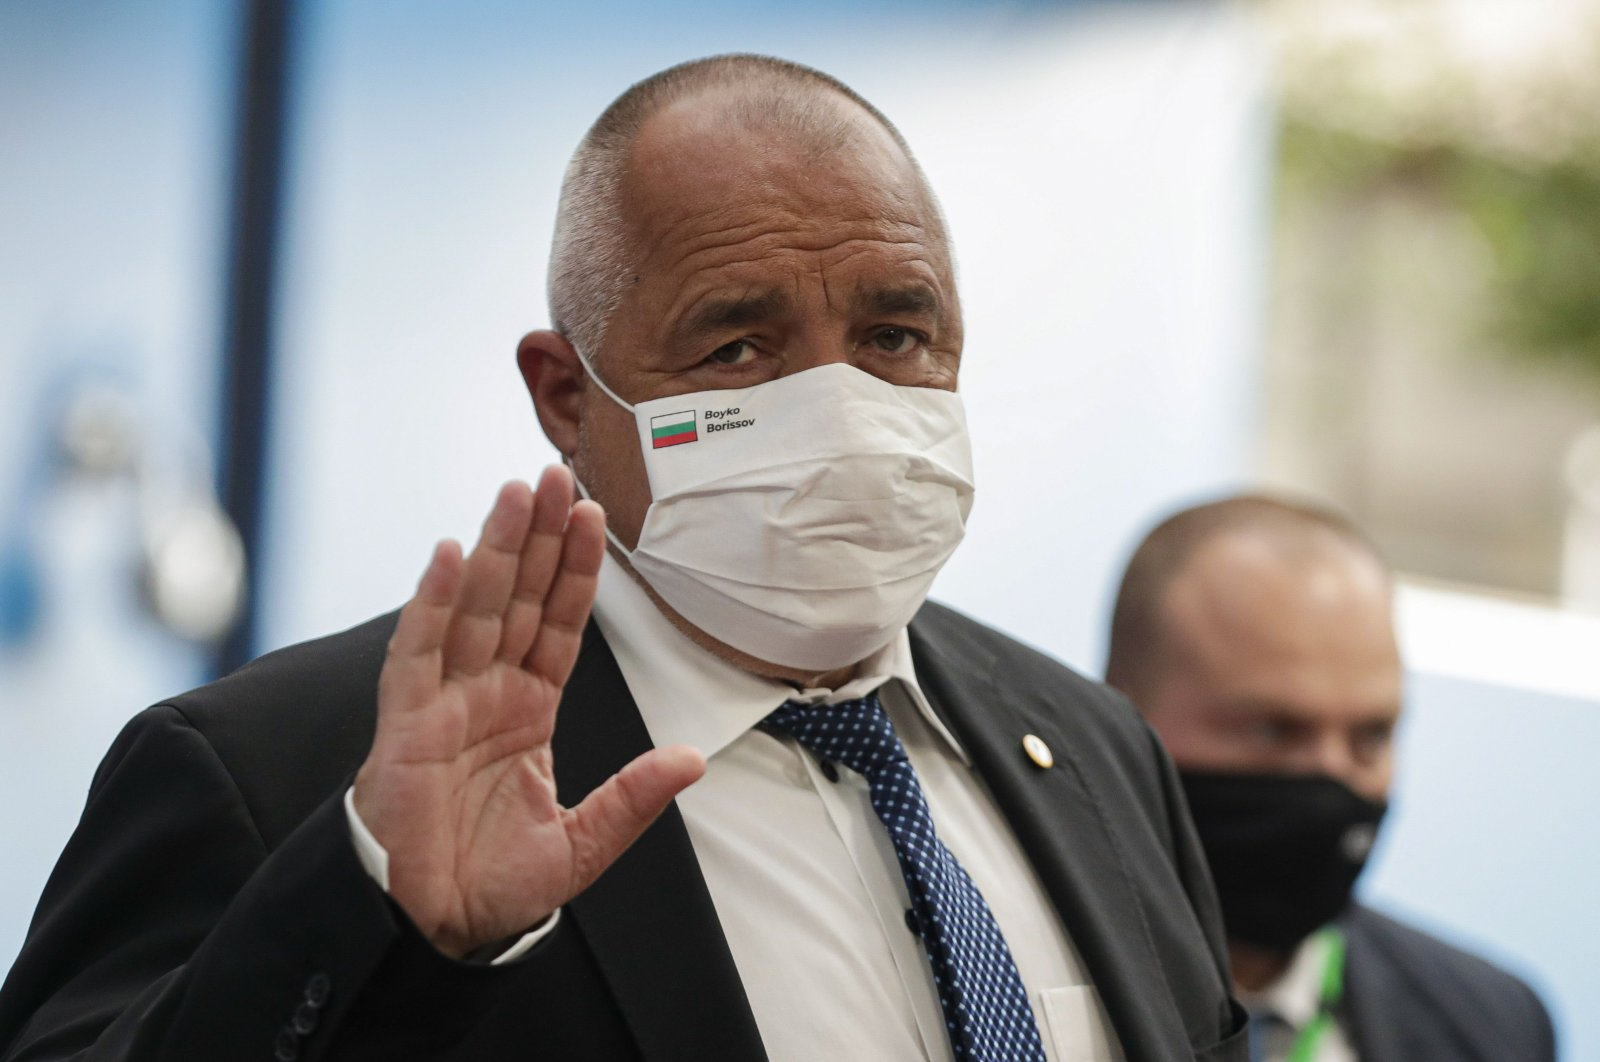 Bulgaria's Prime Minister Boyko Borissov, wearing a protective face mask, waves as he arrives for the fourth day of an EU summit at the European Council building in Brussels, on July 20, 2020. (AFP Photo)